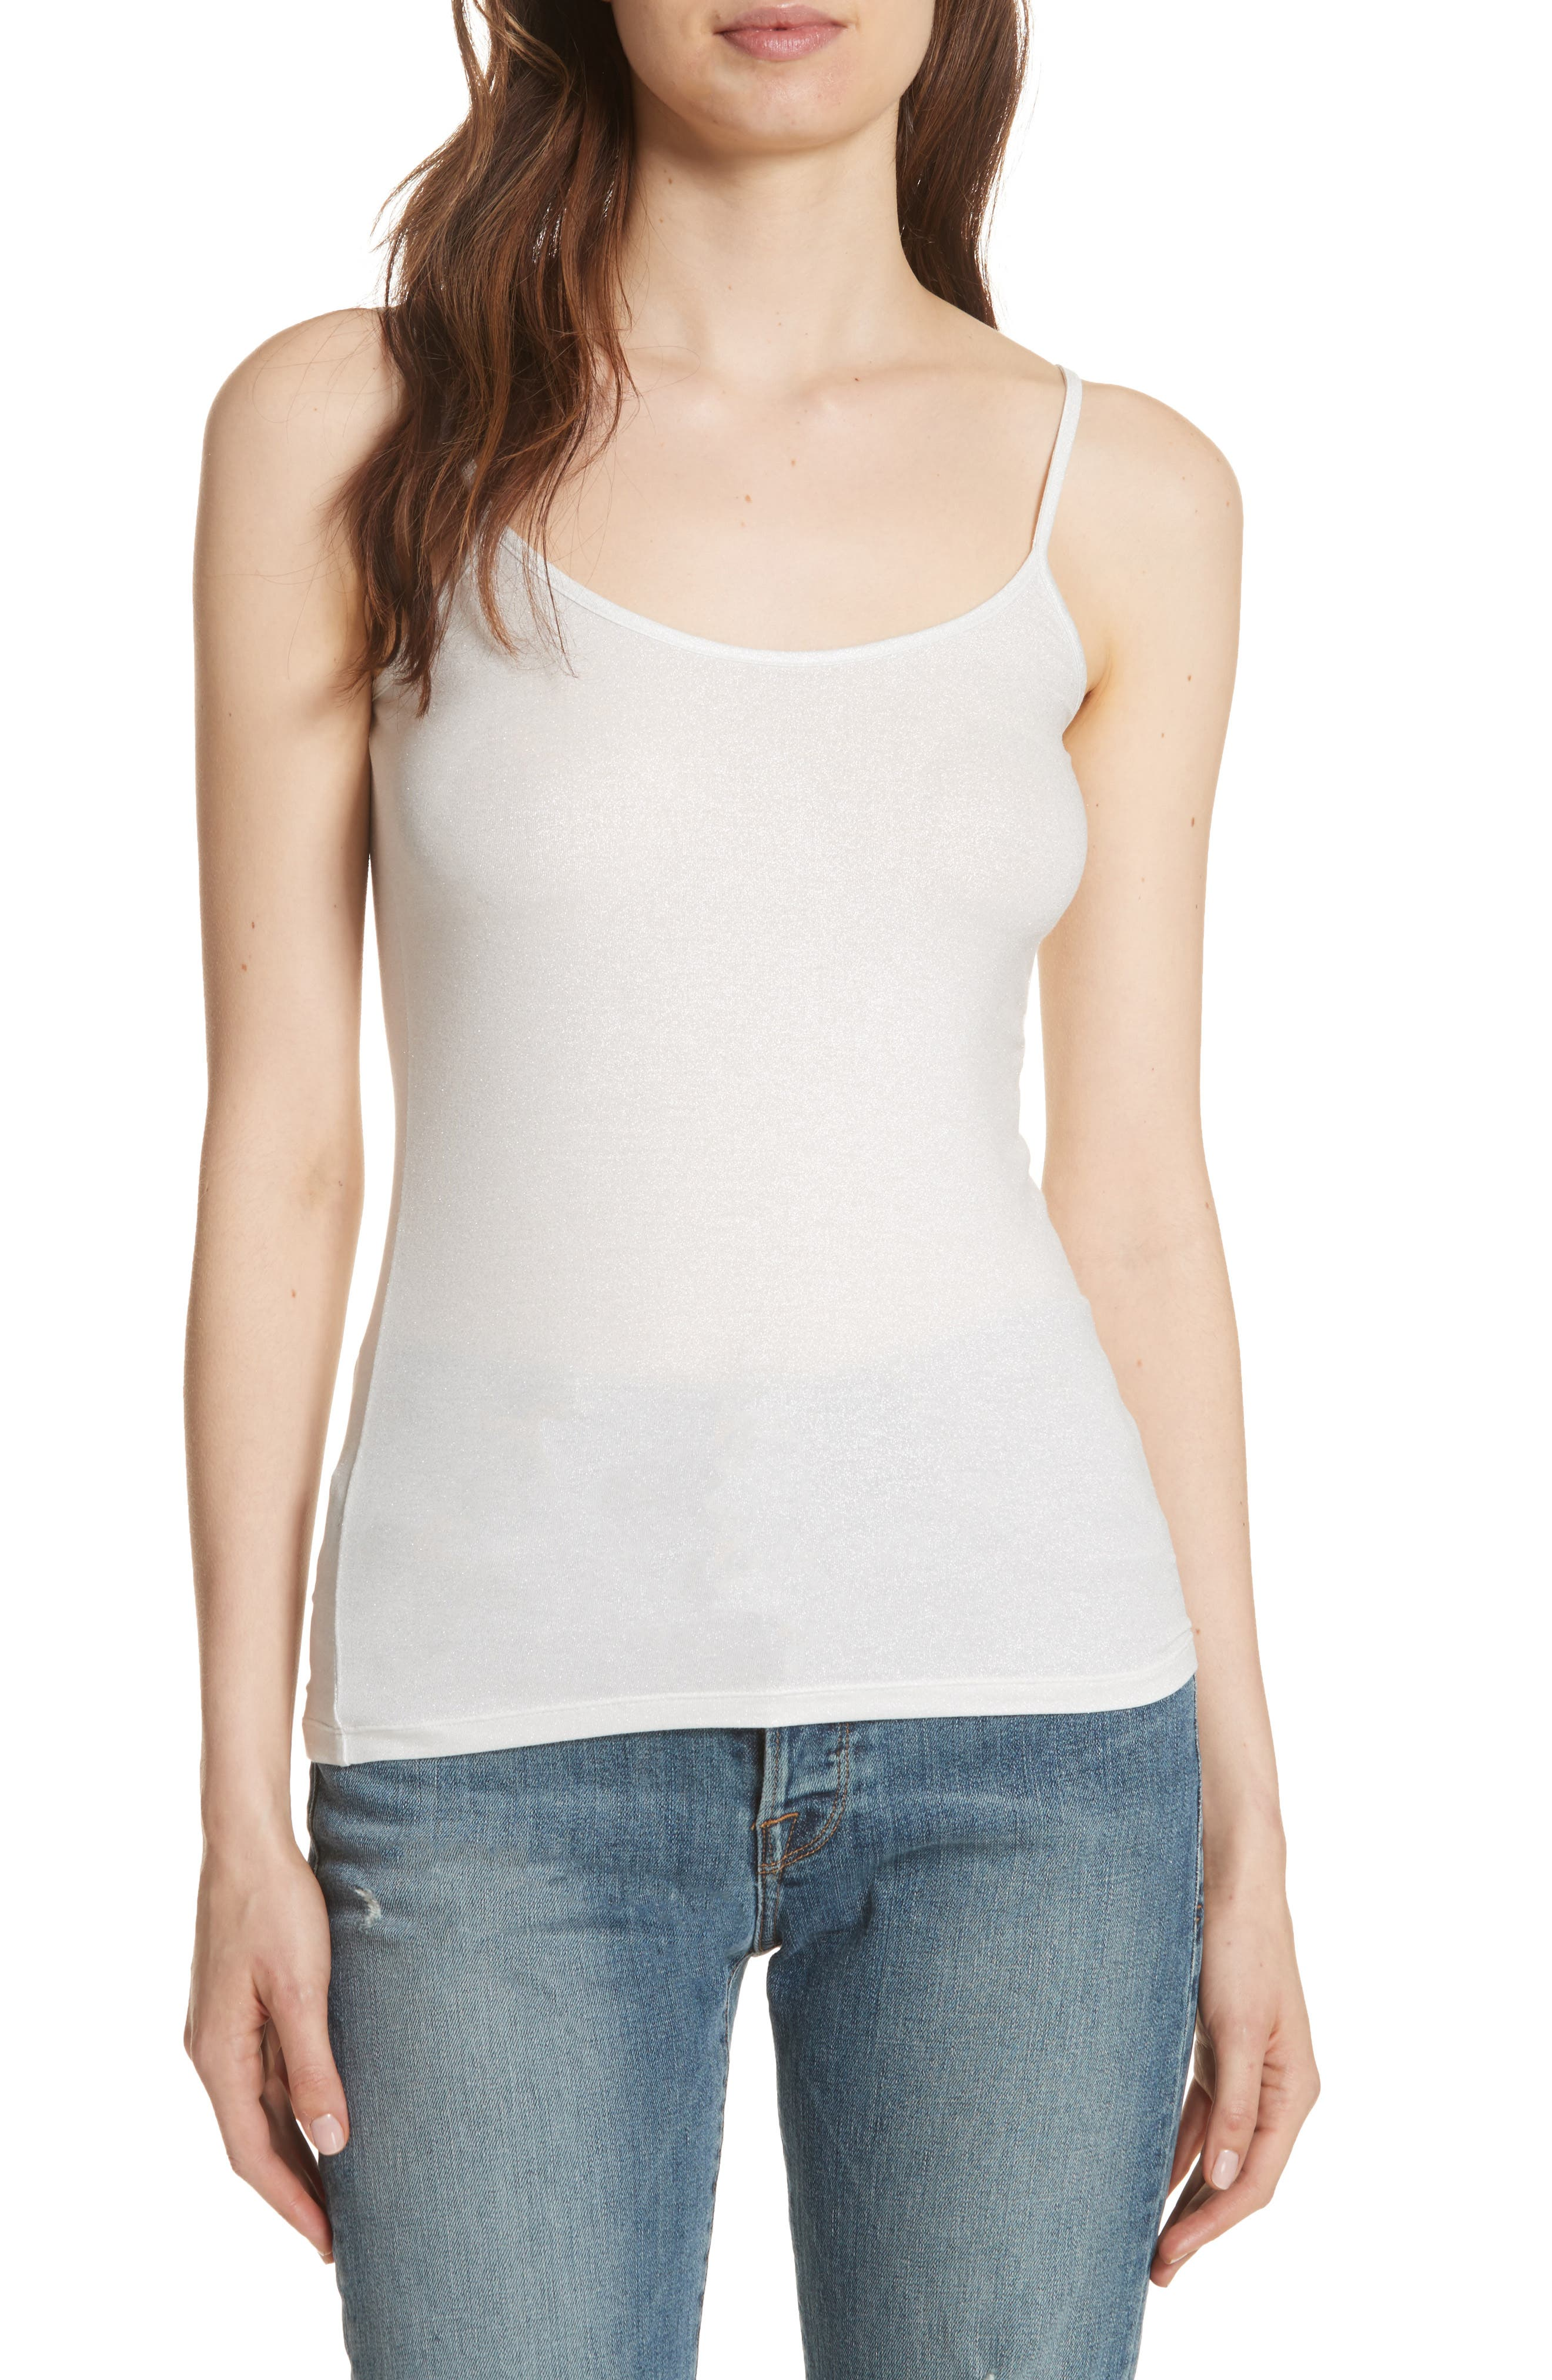 Buy Cheap With Mastercard Sleeveless Top - CHISELED PEWTER by VIDA VIDA Eastbay Cheap Online Classic Pre Order Multi Coloured kHecNyT